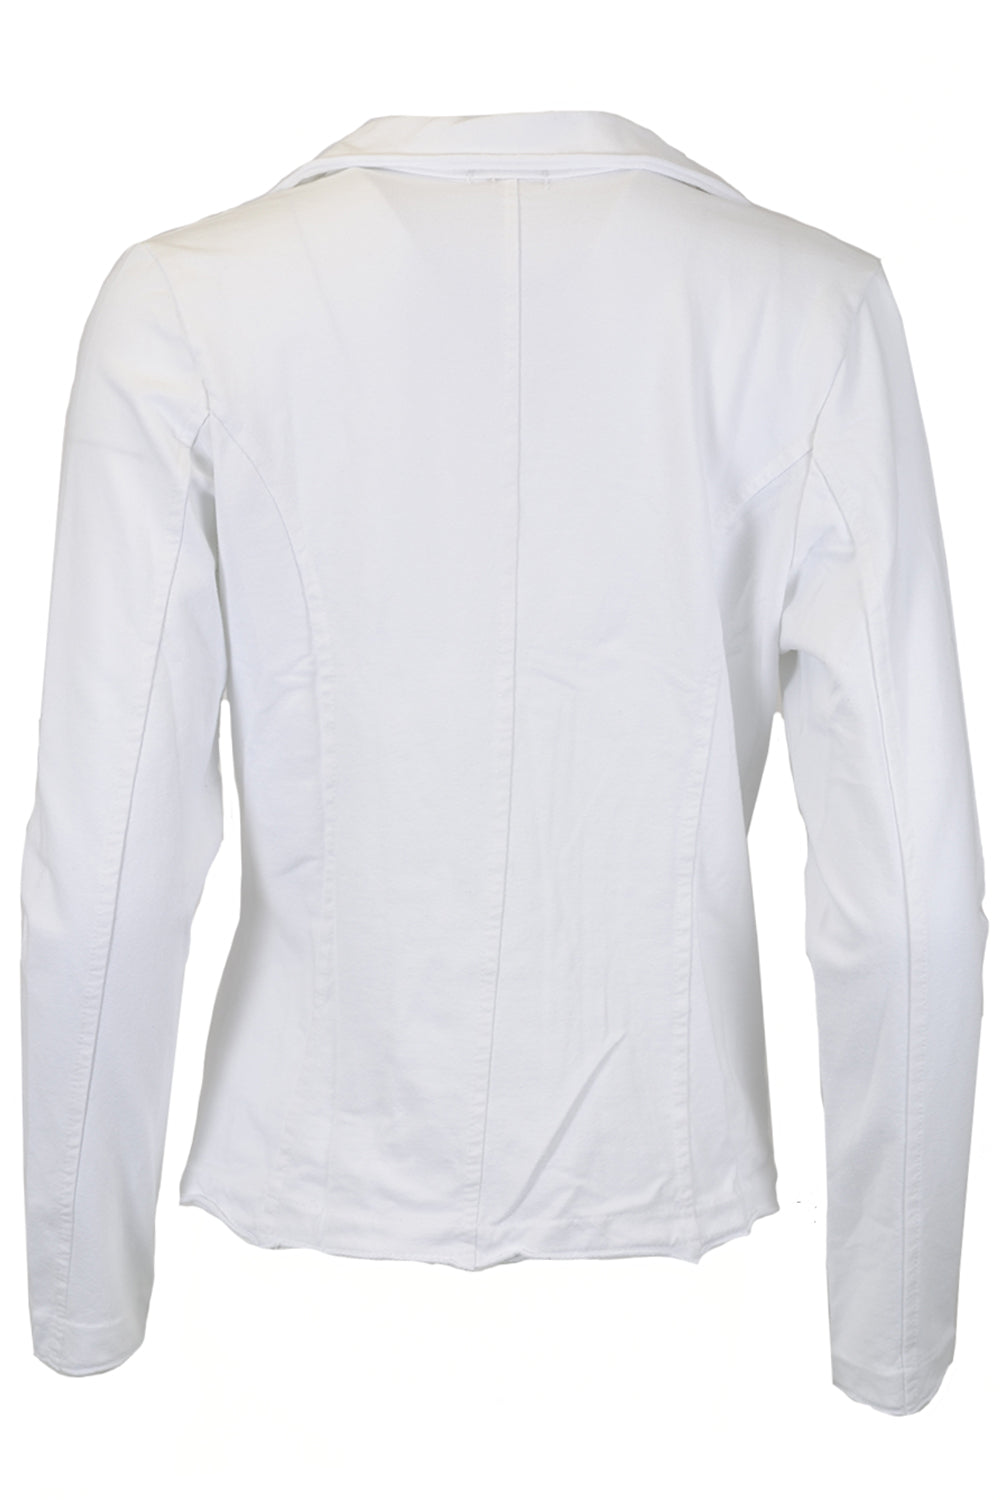 Suzy D Jersey Jacket with Raw Edges White